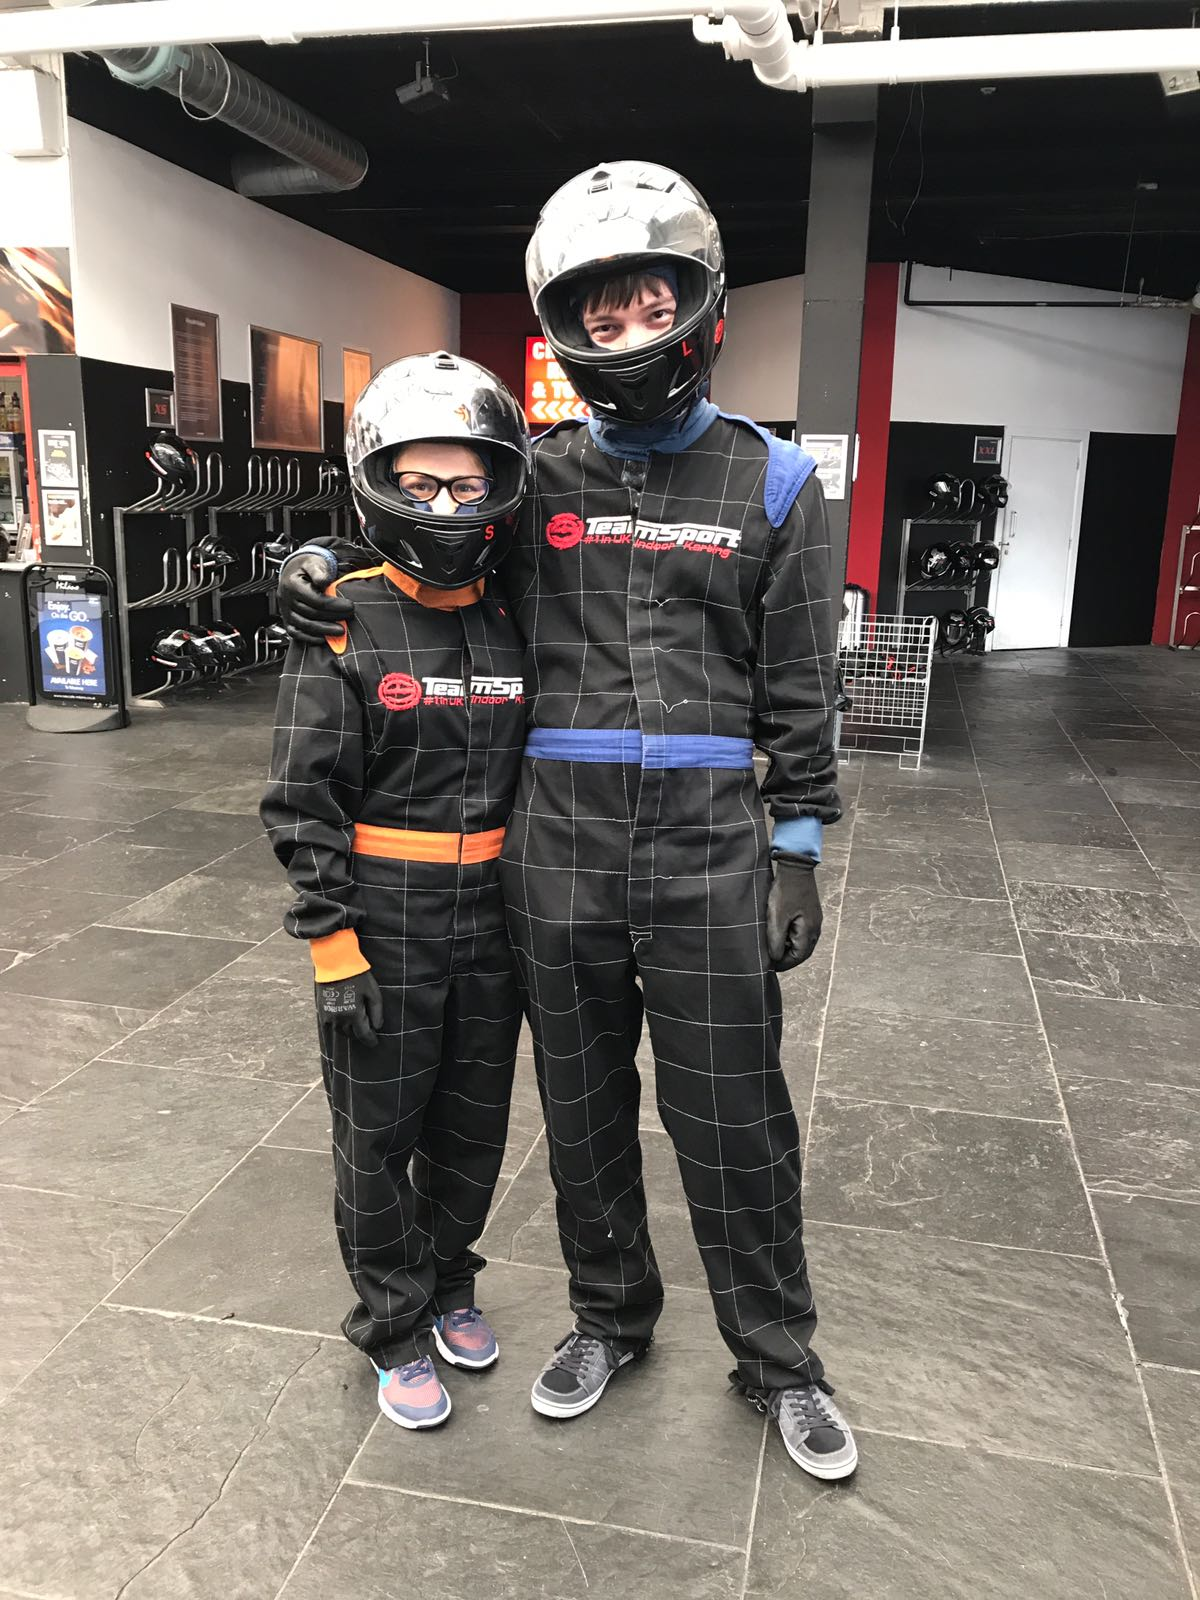 Karting with my wife